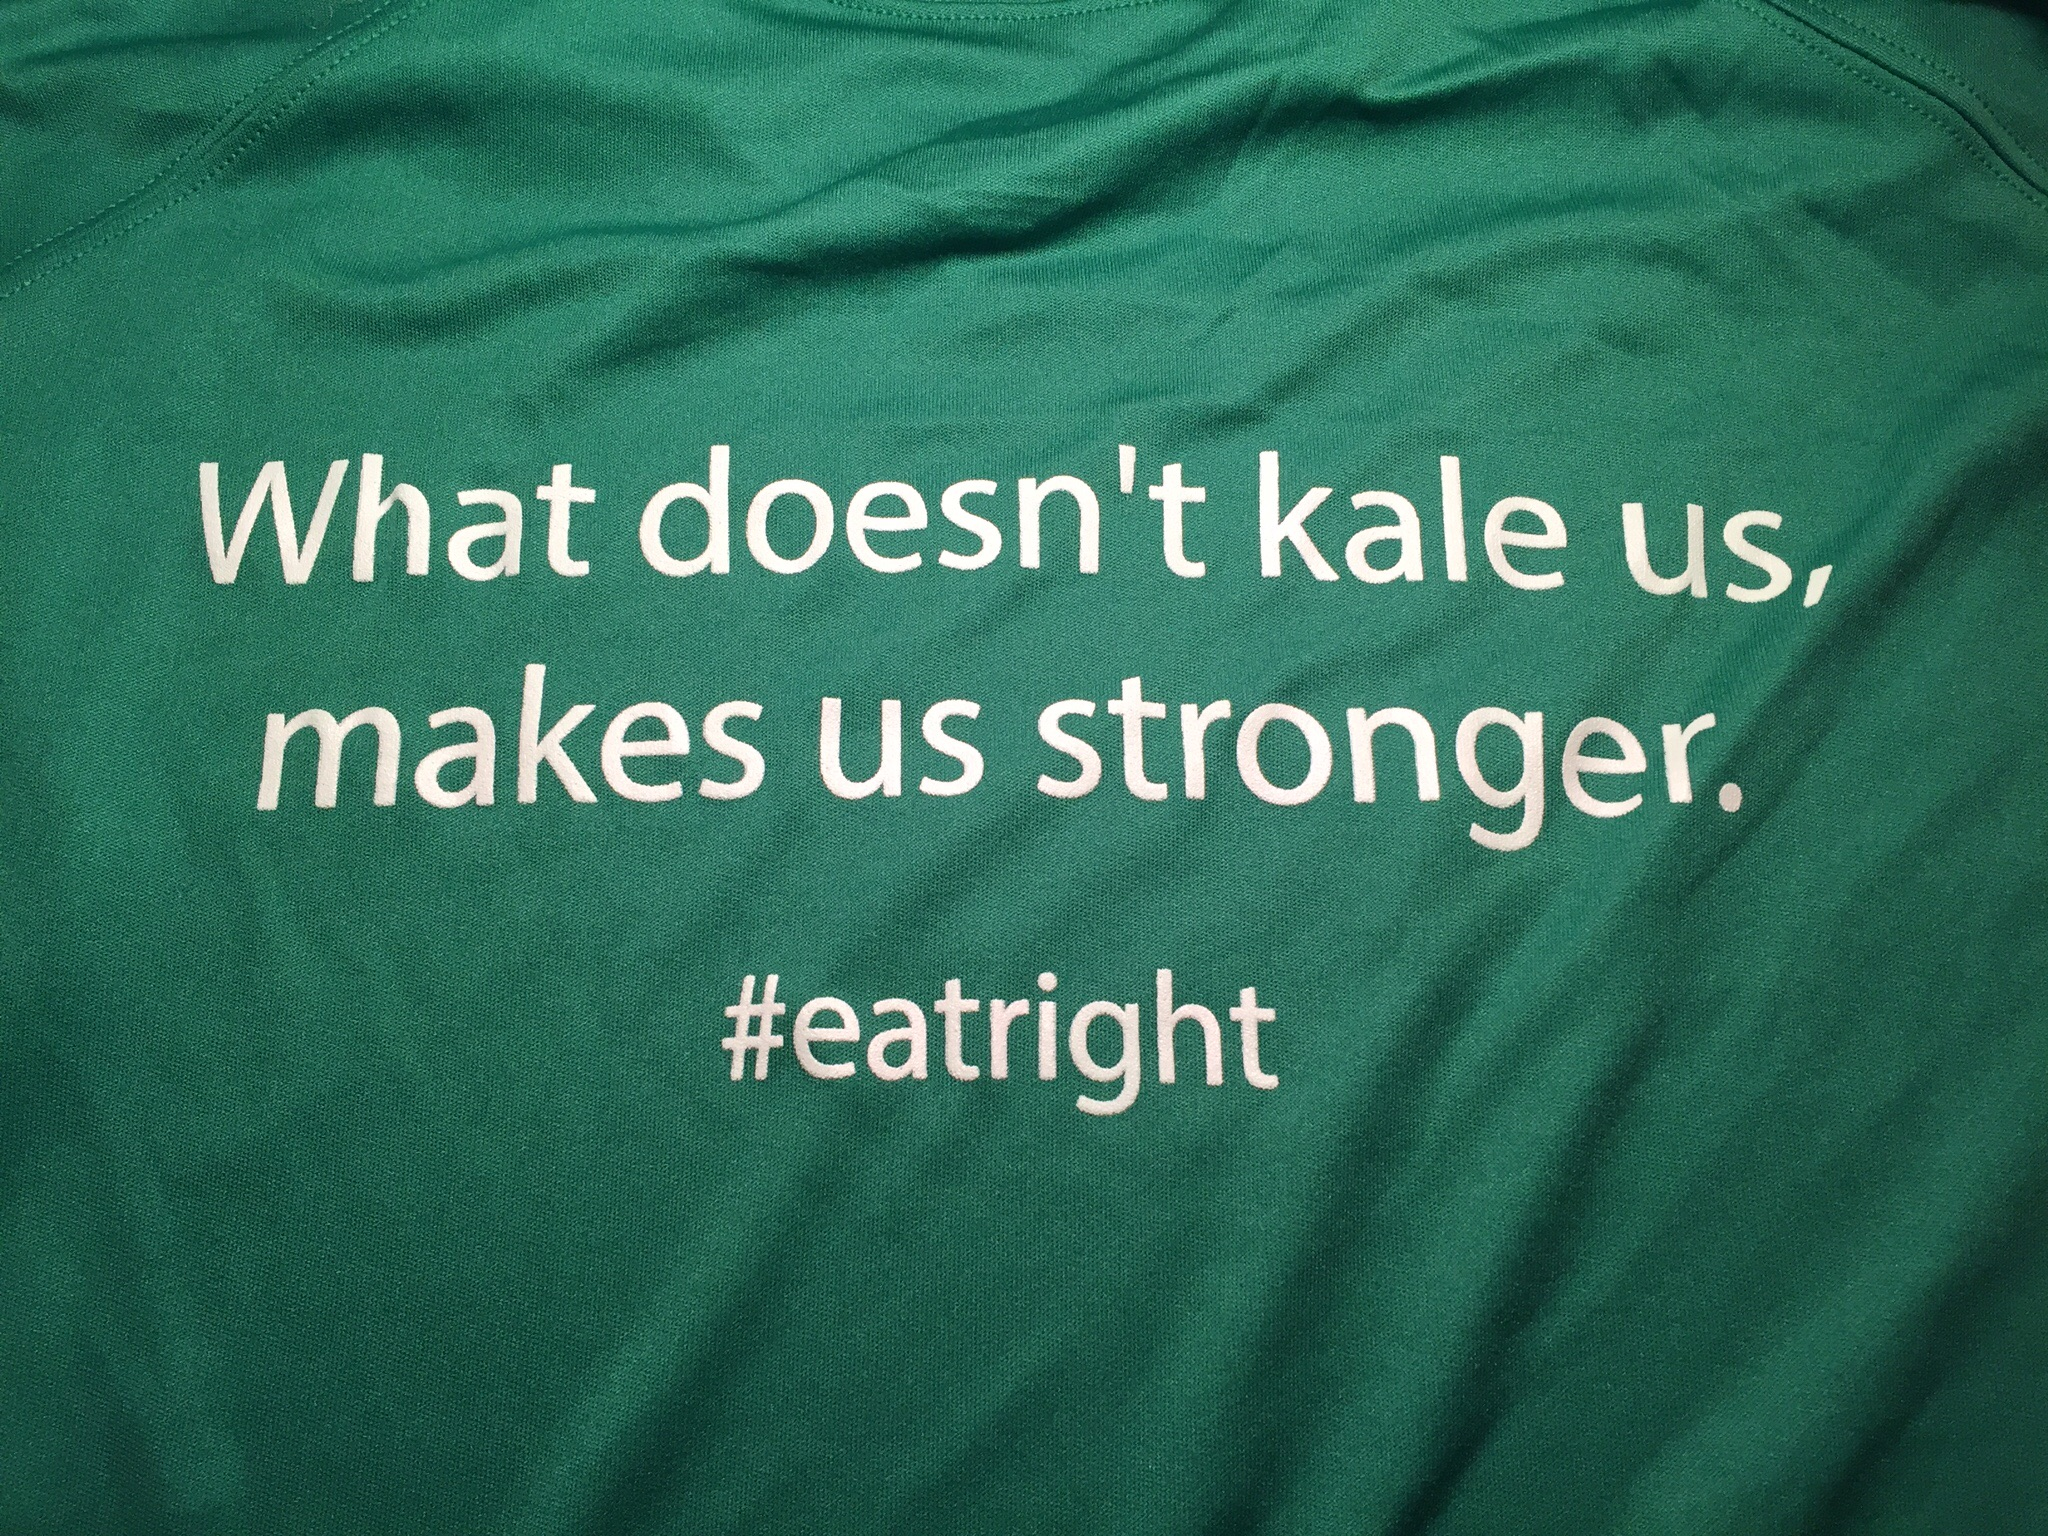 Visit eatright.org and kidseatright.org for the most up to date evidence based nutrition information.